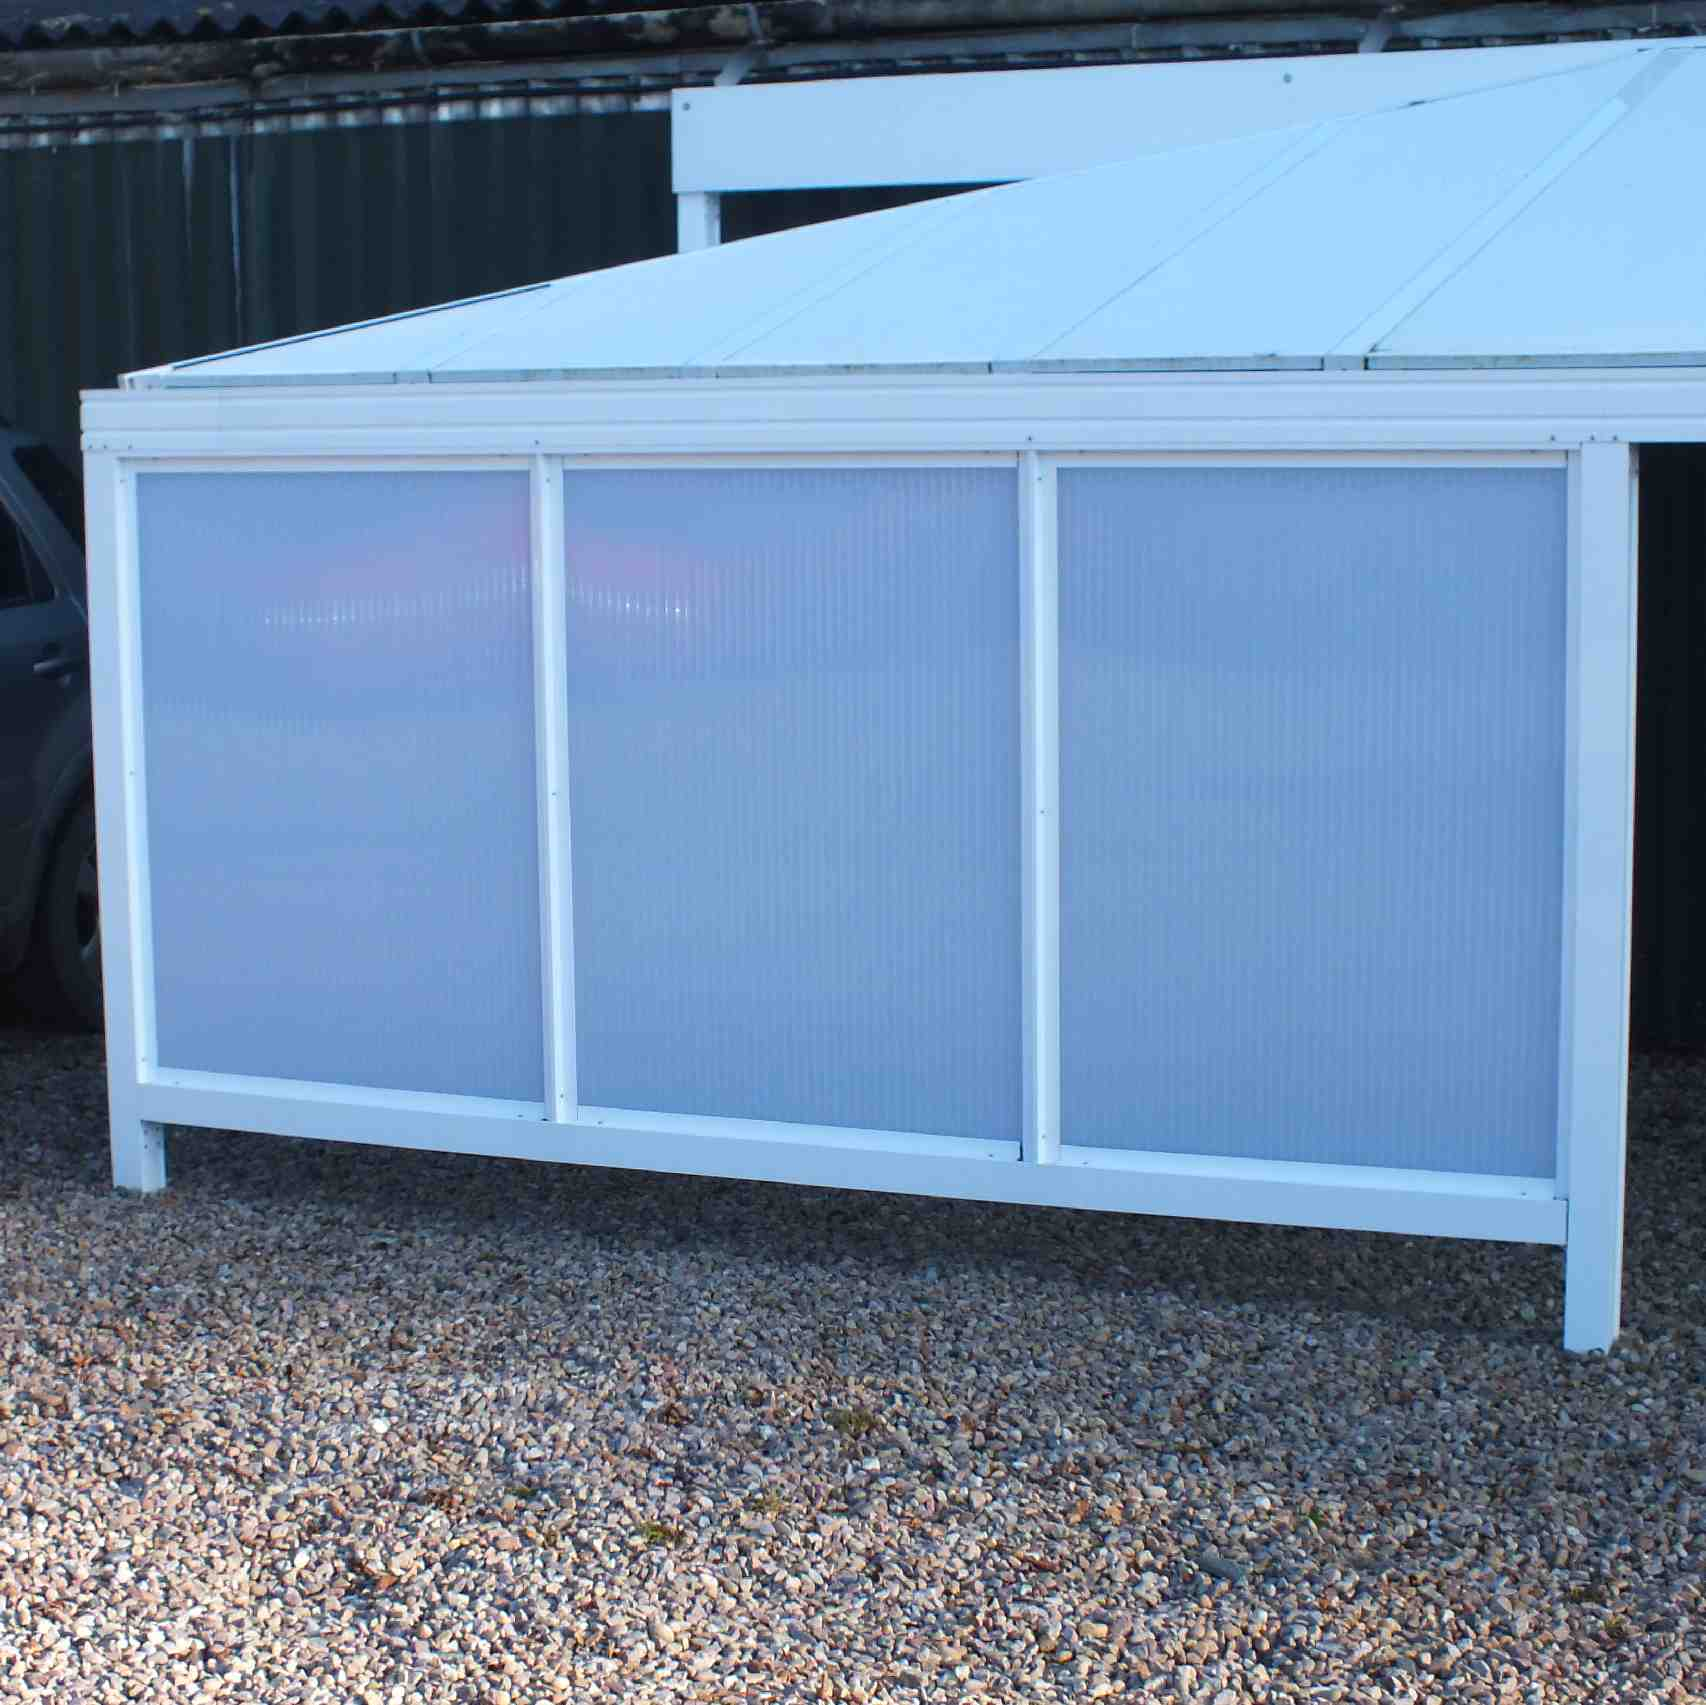 Omega Smart Canopy - UNDER EAVES In-Fill Sections (3 In-Fill Panels),  6mm Glass Clear Plate Polycarbonate In-Fill Panels, White Frame